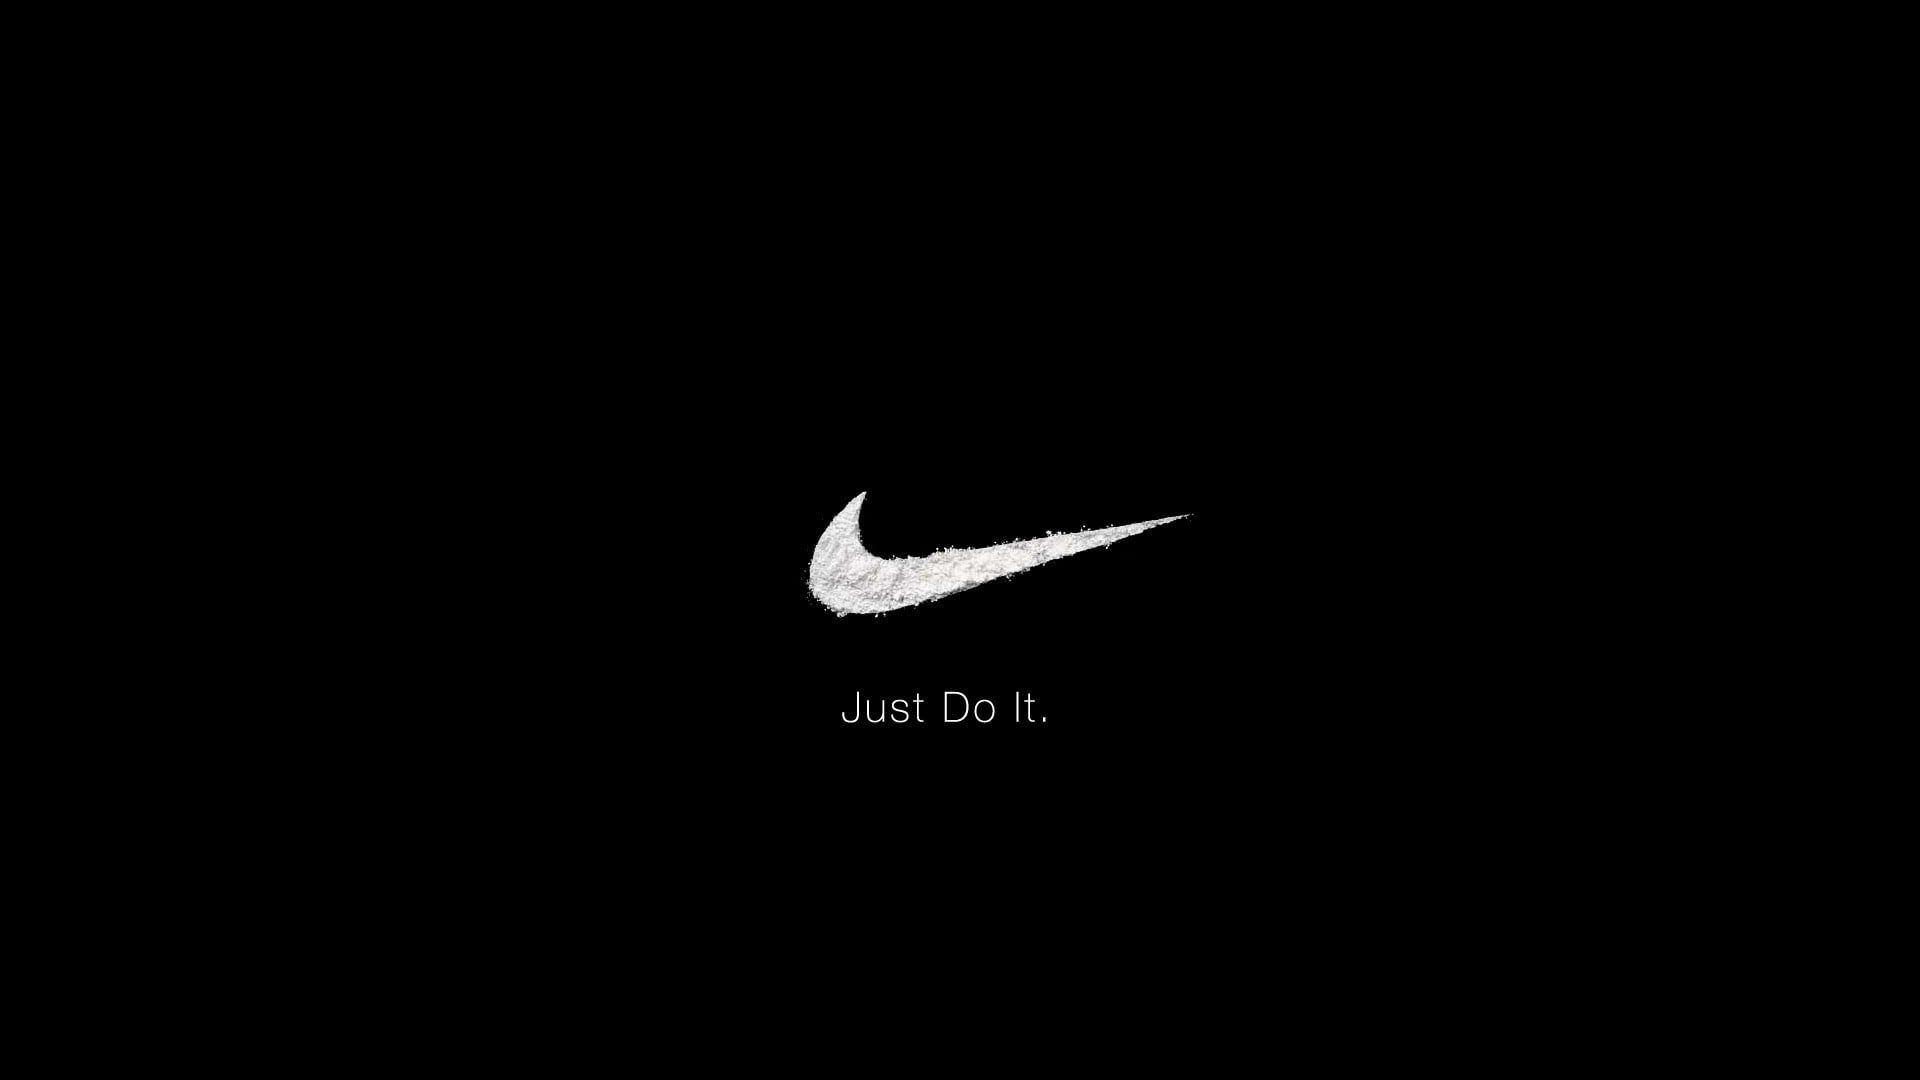 Nike Logo Nike Just Do It Slogan 1080p Wallpaper Hdwallpaper Desktop In 2020 Nike Logo Wallpapers Logo Wallpaper Hd Nike Wallpaper